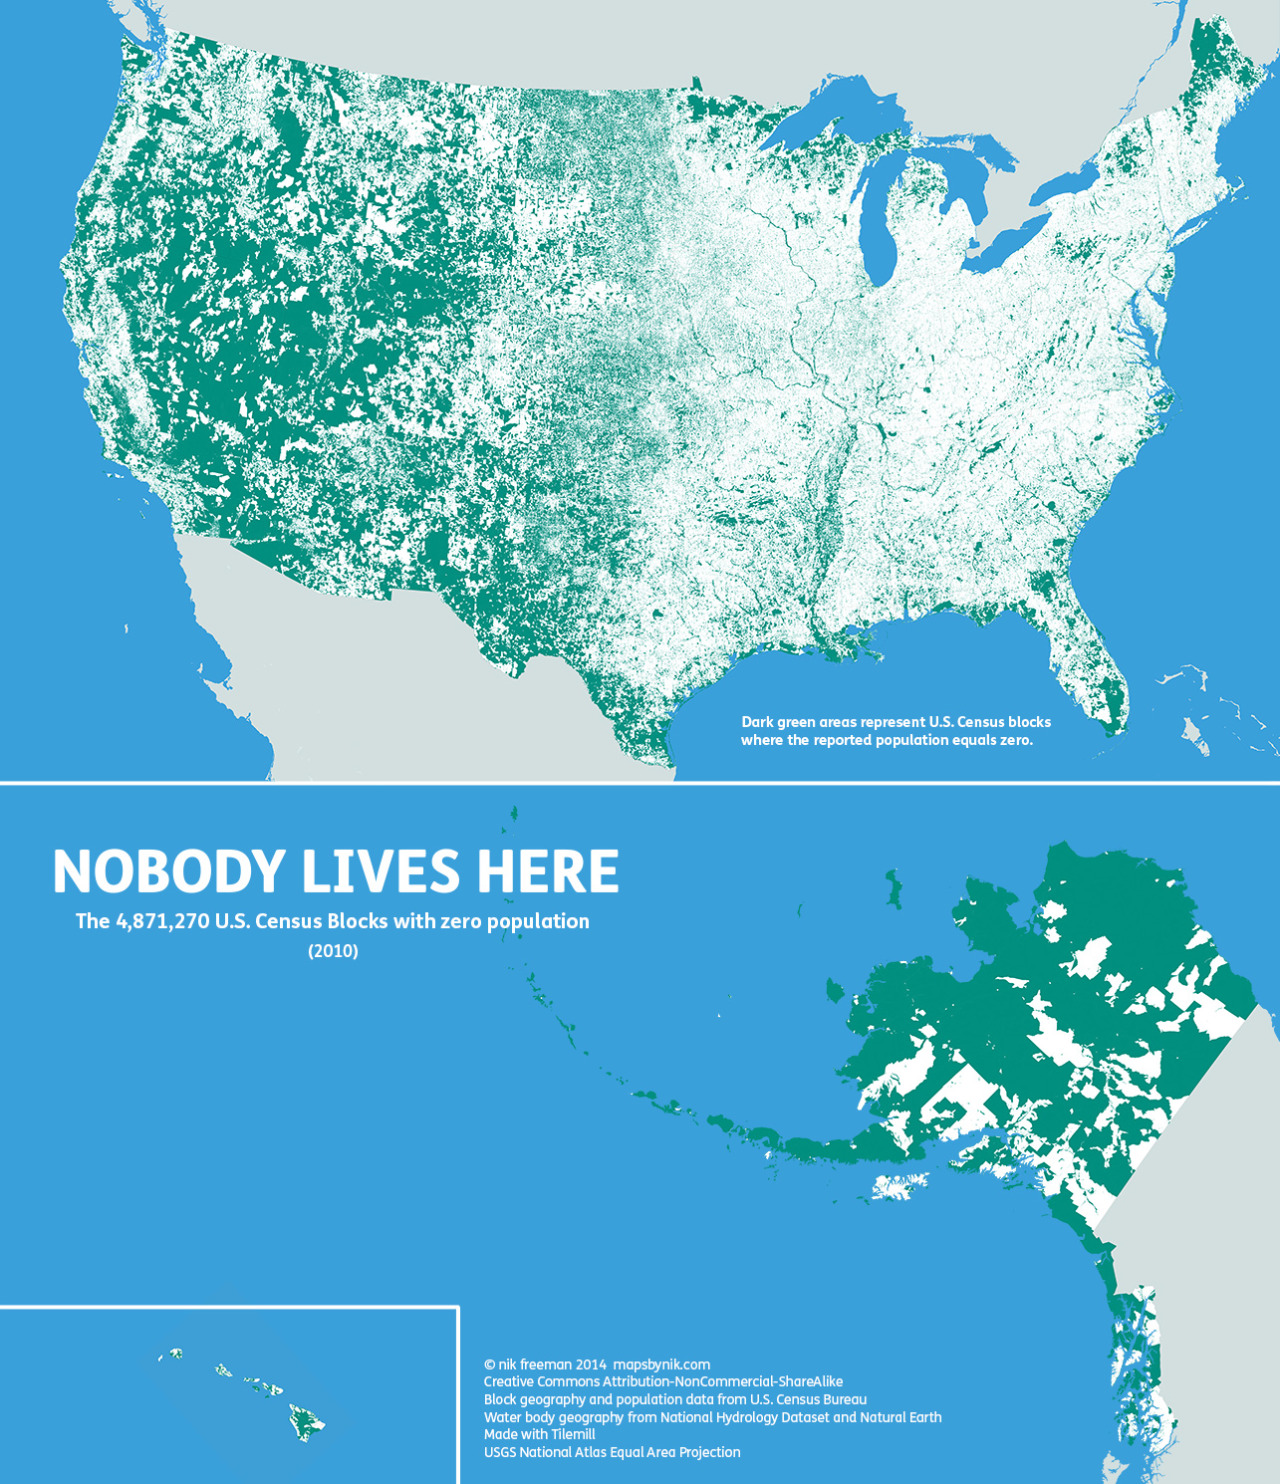 Nobody lives here: The nearly 5 million Census Blocks with zero population  A Block is the smallest area unit used by the U.S. Census Bureau for tabulating statistics. As of the 2010 census, the United States consists of 11,078,300 Census Blocks. Of them, 4,871,270 blocks totaling 4.61 million square kilometers were reported to have no population living inside them. Despite having a population of more than 310 million people, 47 percent of the USA remains unoccupied.  Green shading indicates unoccupied Census Blocks. A single inhabitant is enough to omit a block from shading  Quick update: If you're the kind of map lover who cares about cartographic accuracy, check out the new version which fixes the Gulf of California. If you save this map for your own projects, please use this one instead.  Map observations  The map tends to highlight two types of areas:  places where human habitation is physically restrictive or impossible, and places where human habitation is prohibited by social or legal convention. Water features such lakes, rivers, swamps and floodplains are revealed as places where it is hard for people to live. In addition, the mountains and deserts of the West, with their hostility to human survival, remain largely void of permanent population.  Of the places where settlement is prohibited, the most apparent are wilderness protection and recreational areas (such as national and state parks) and military bases. At the national and regional scales, these places appear as large green tracts surrounded by otherwise populated countryside.  At the local level, city and county parks emerge in contrast to their developed urban and suburban surroundings. At this scale, even major roads such as highways and interstates stretch like ribbons across the landscape.  Commercial and industrial areas are also likely to be green on this map. The local shopping mall, an office park, a warehouse district or a factory may have their own Census Blocks. But if people don't live 